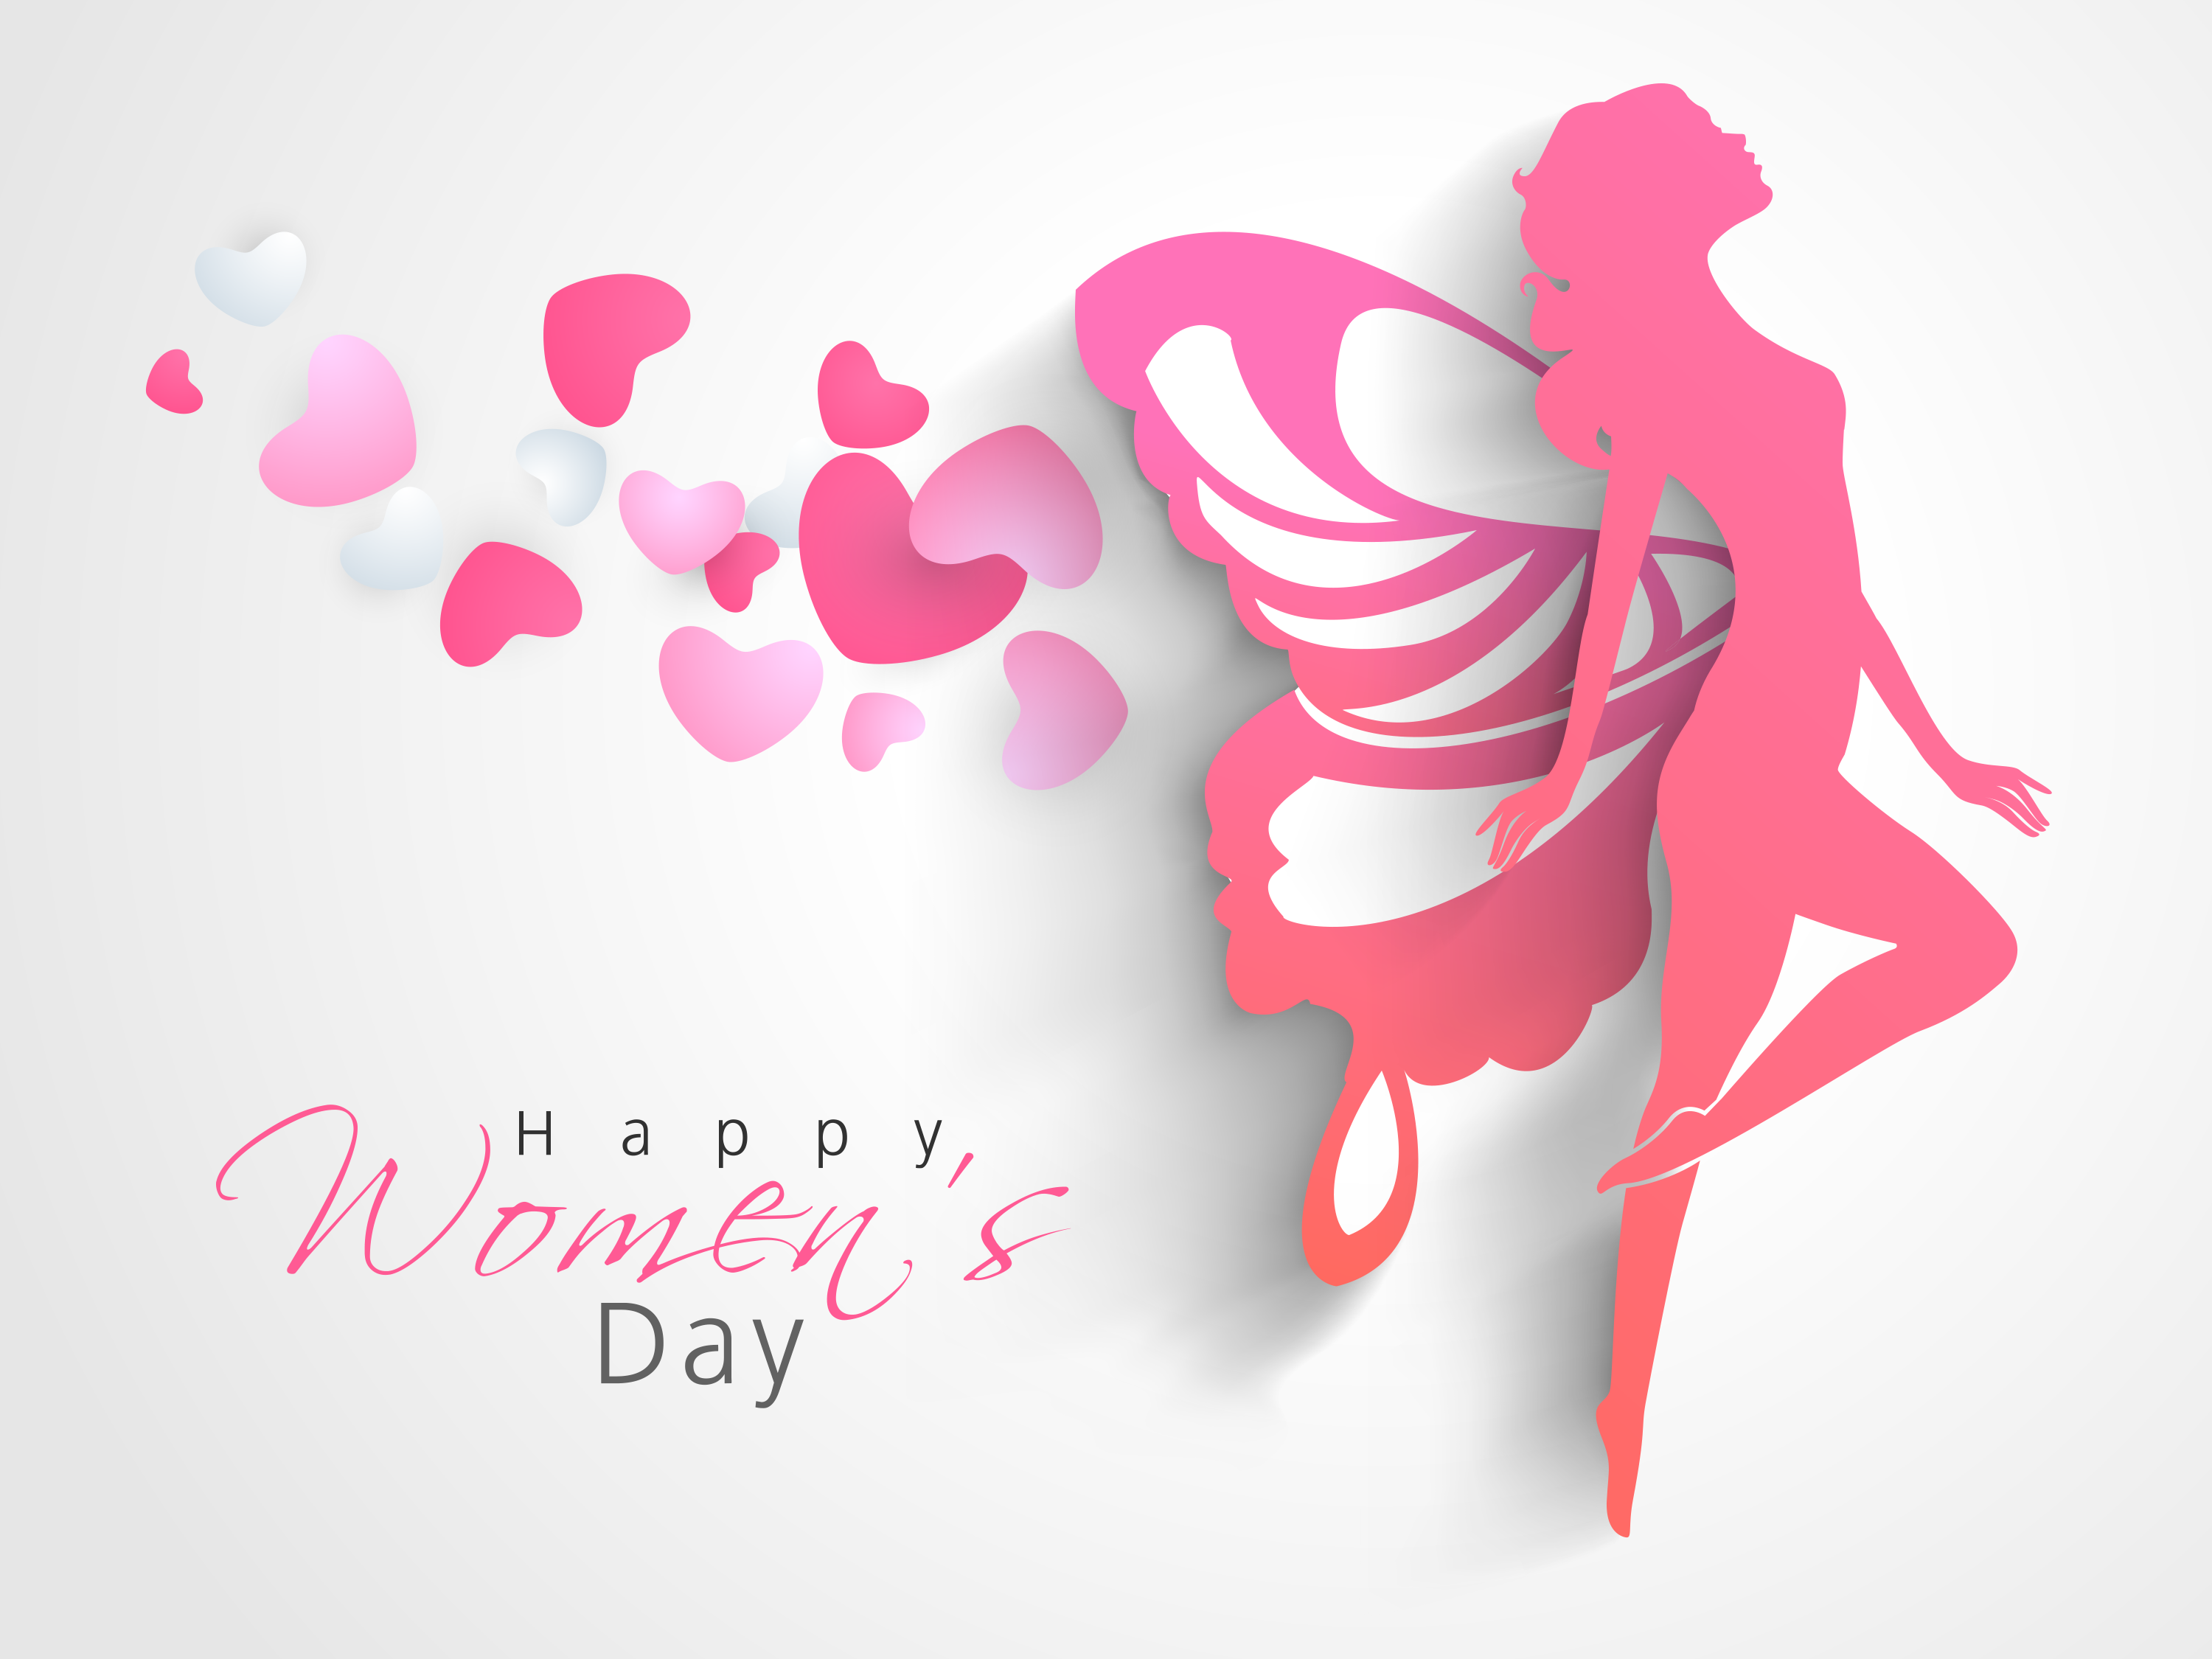 Happy Womens Day Quotes In Telugu Fefacfacfebfbcaeab Happy Womens Day Quotes Beehost Happy Womens Day Quotes Womens Day Quotes Happy Woman Day